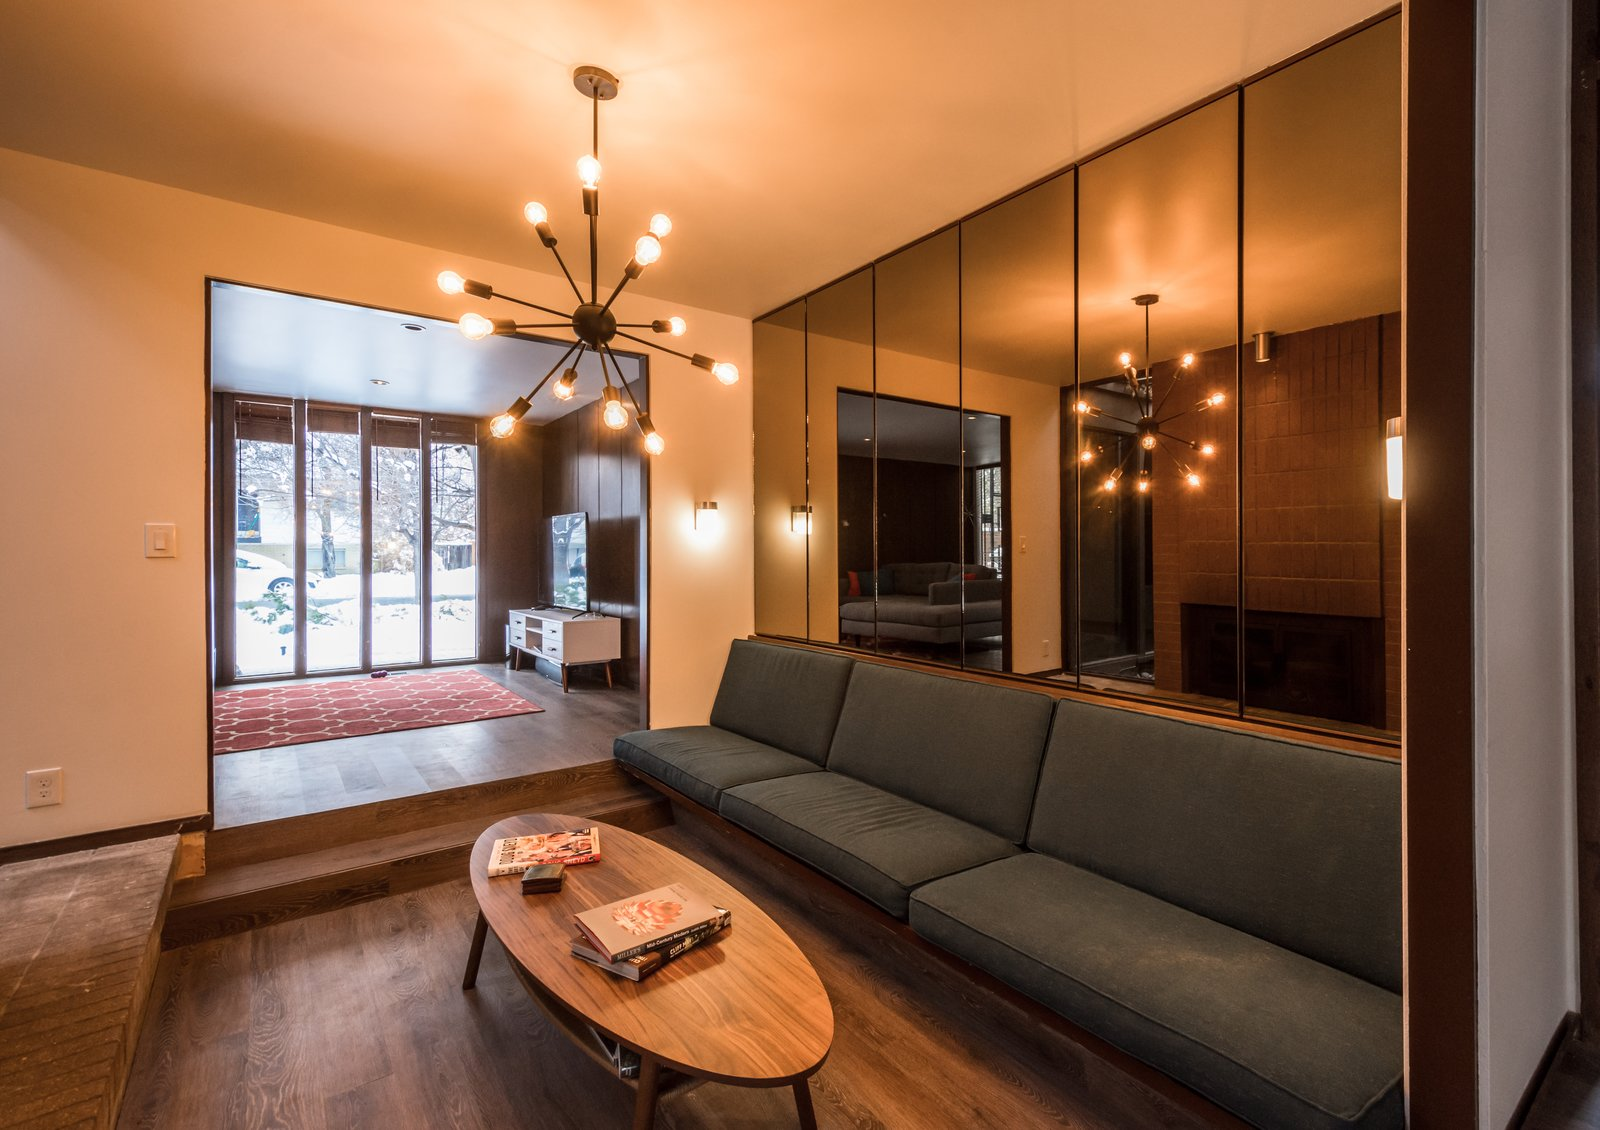 Conversation pit with smoke mirrors and sputnik light  Ron Molen Revival by The Muve Group